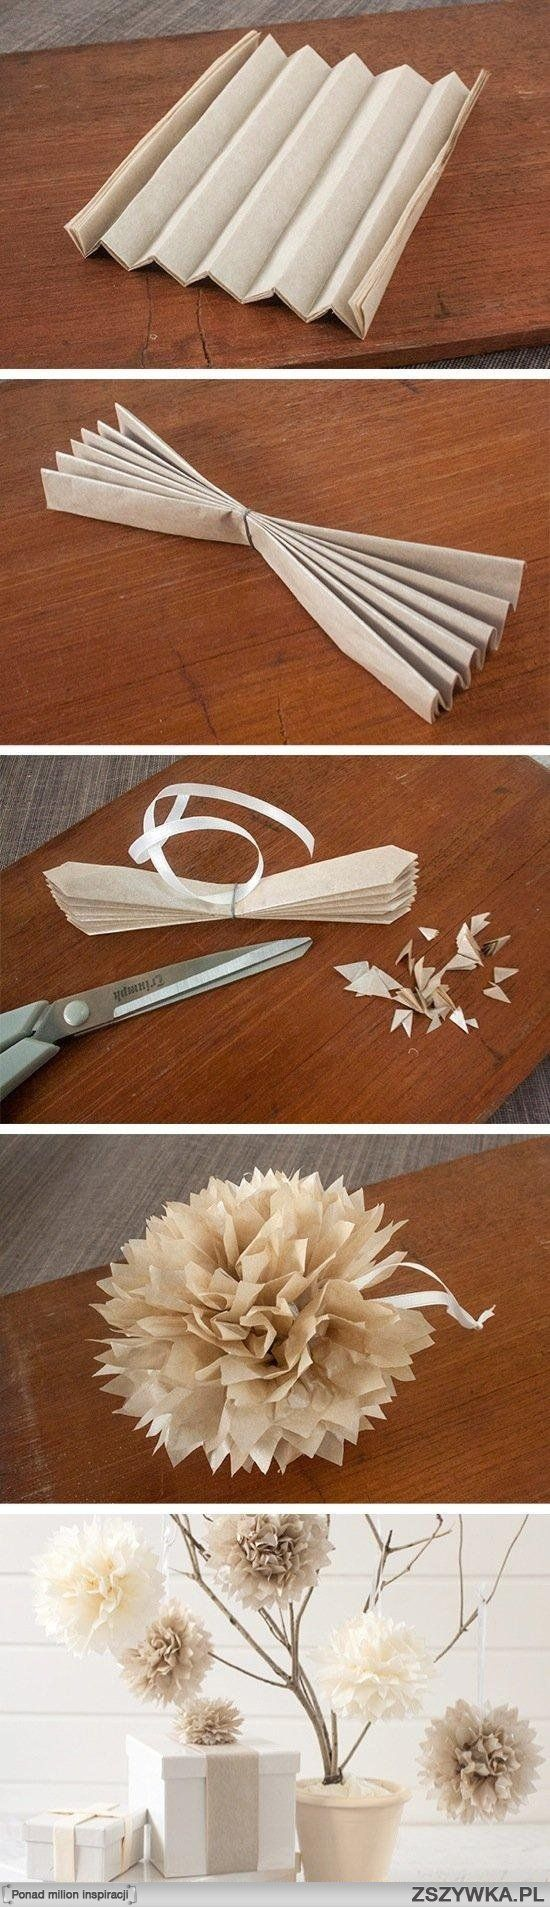 DIY : Create nice flower with paper  @Sarah Chintomby Chintomby Chintomby Chintomby Chintomby Chintomby Chintomby Finney